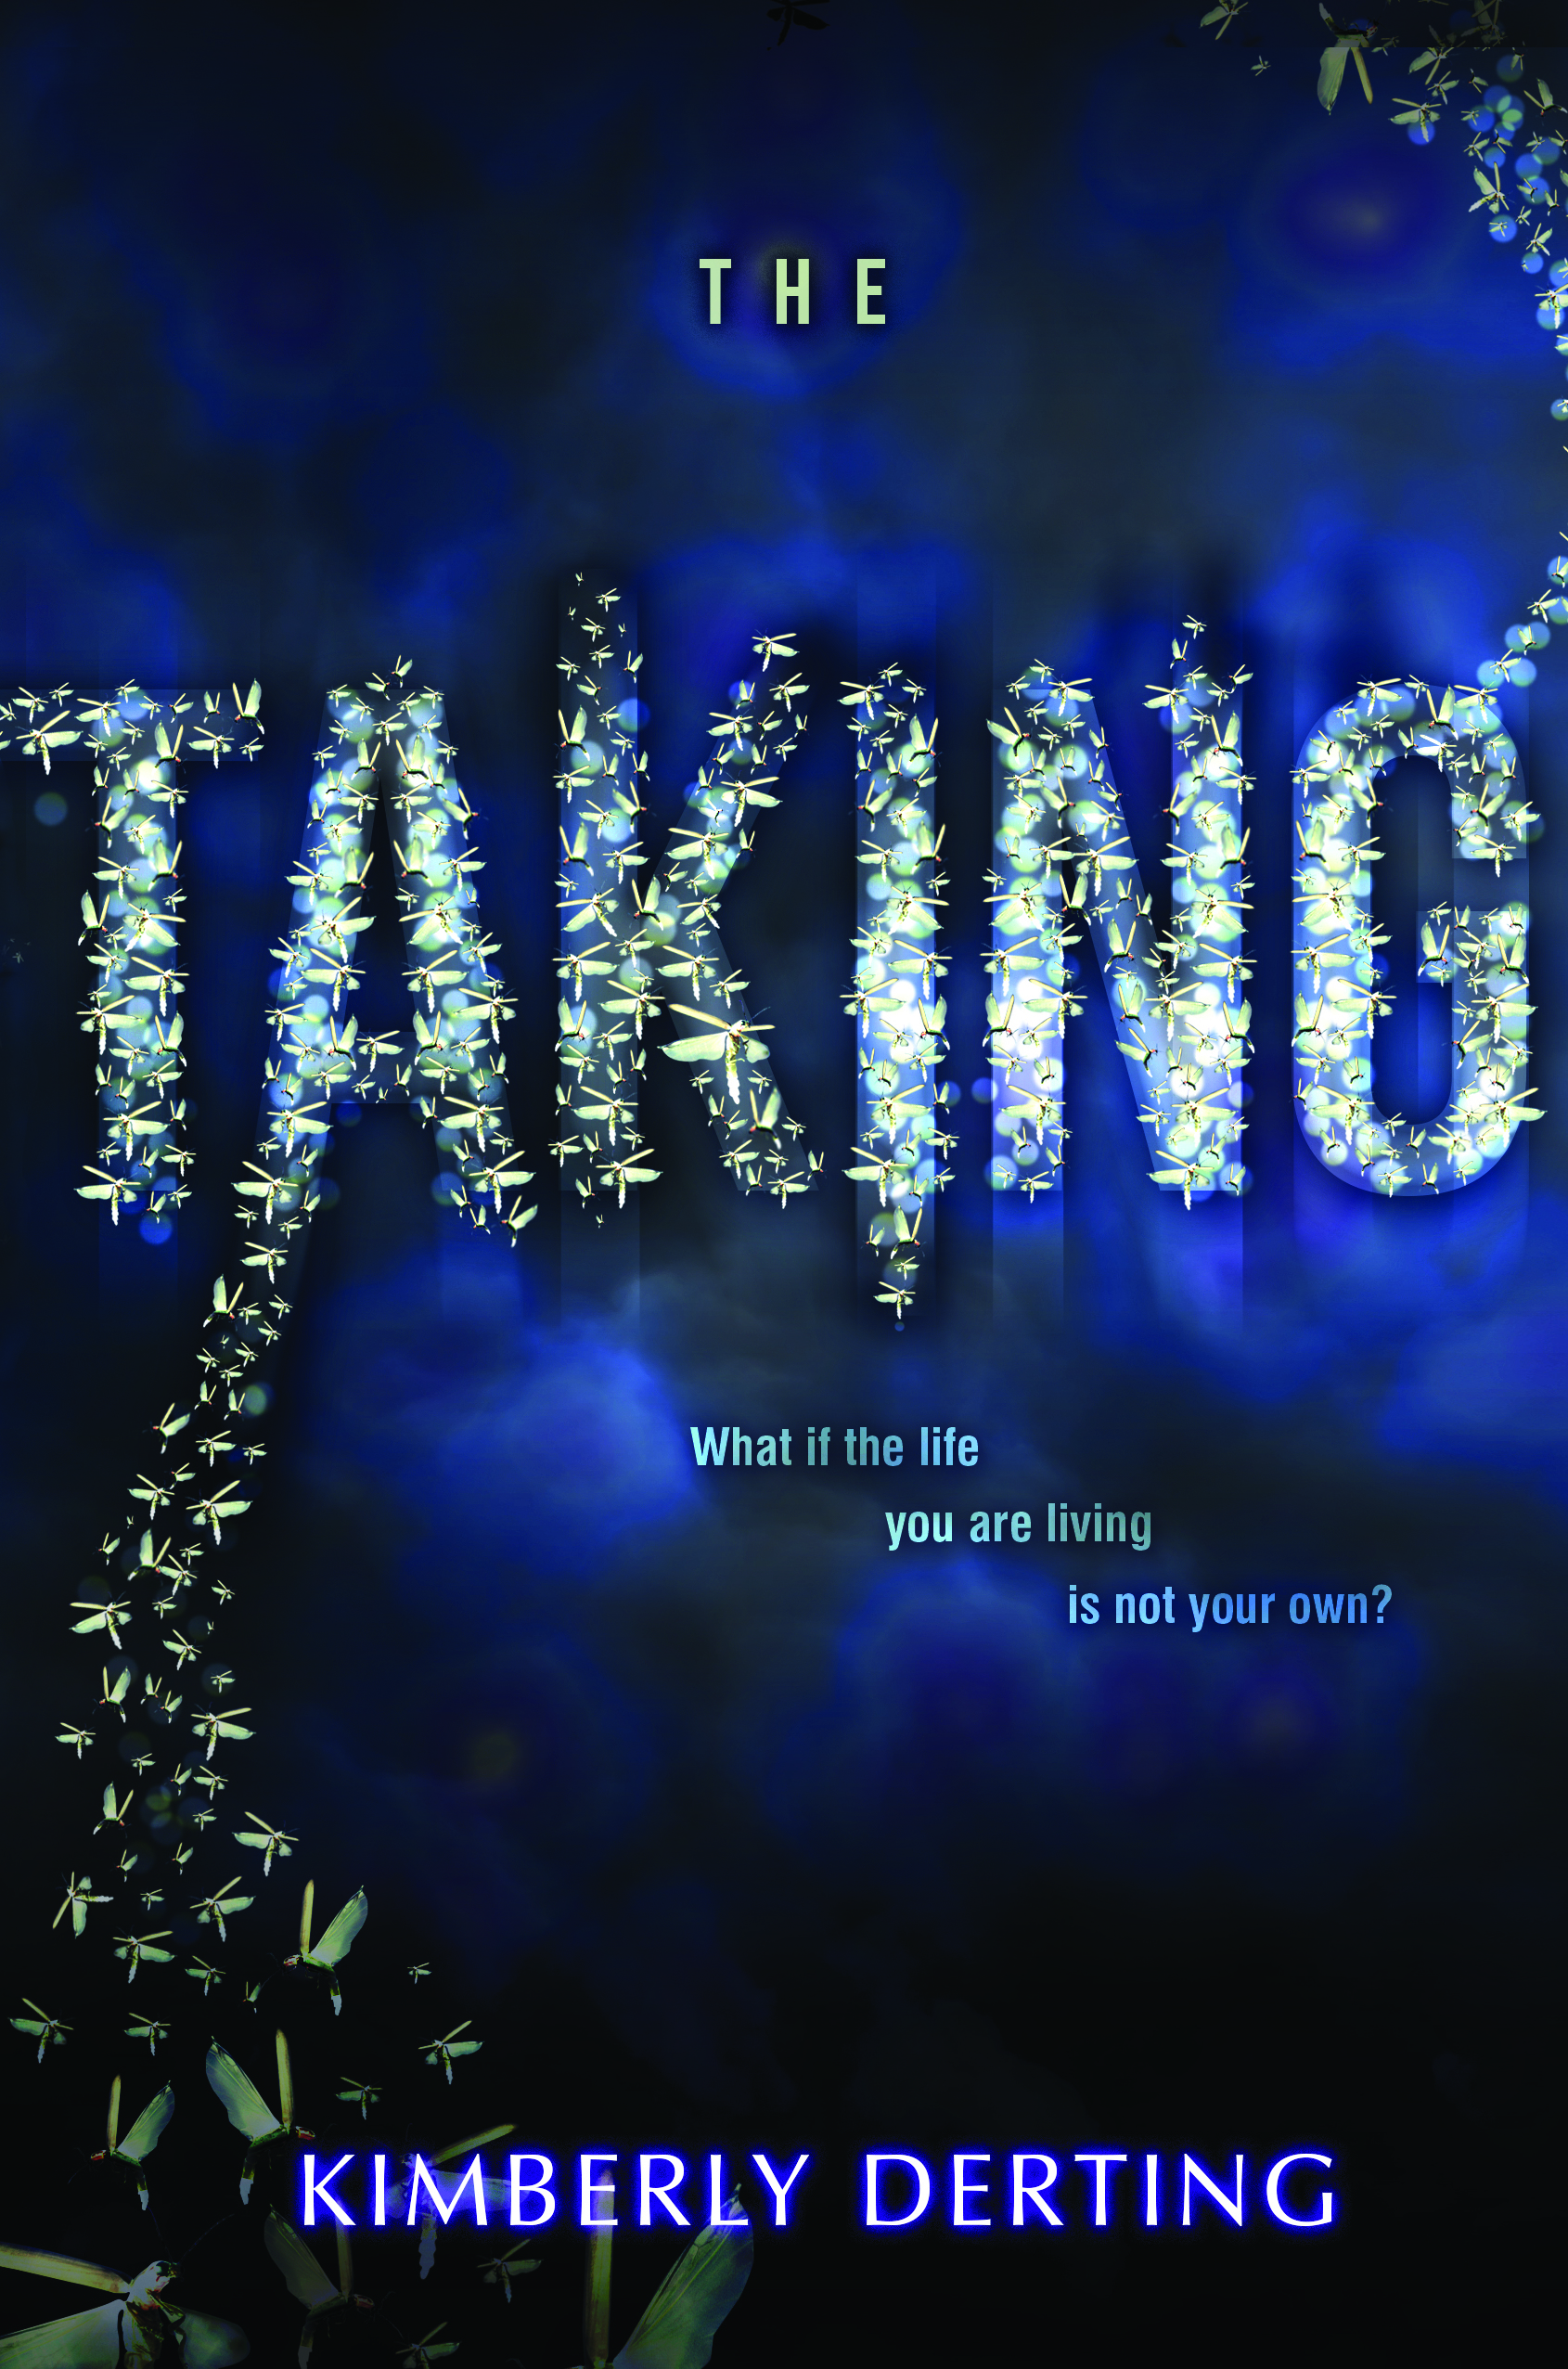 The Taking by Kimberly Derting  Amazon  |  Goodreads